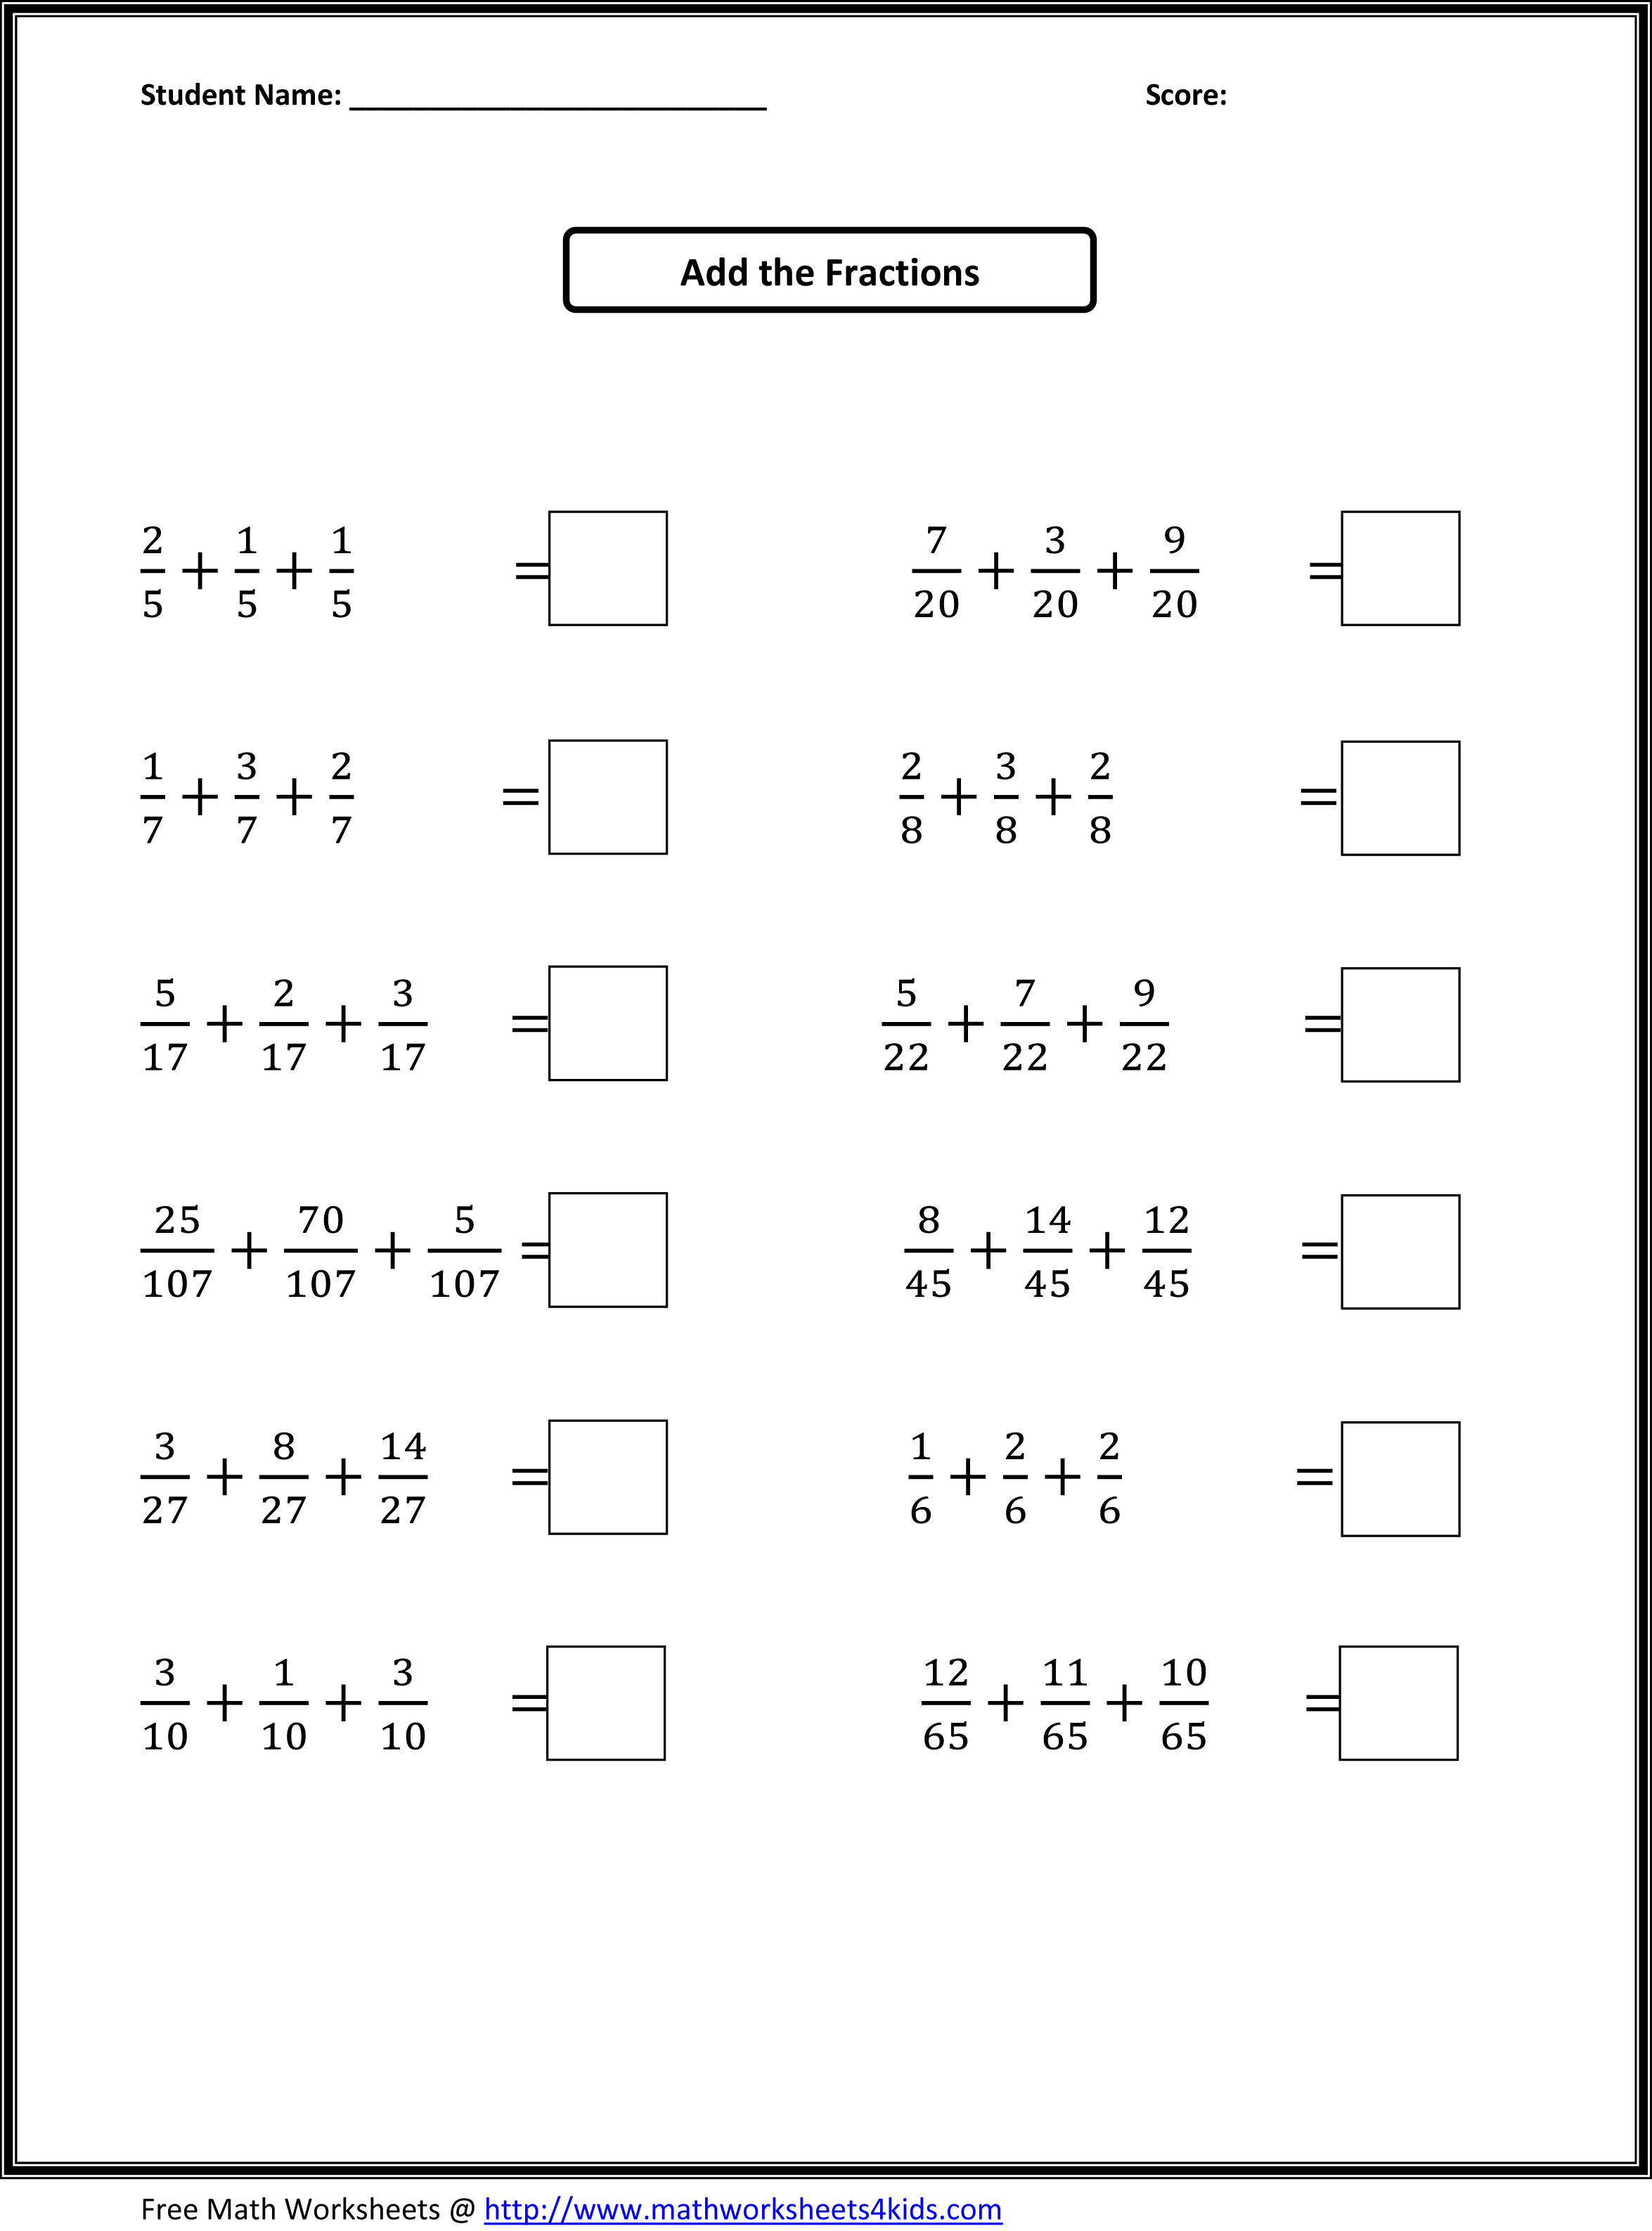 Fraction Worksheets 4th Grade – Fraction Addition Worksheet